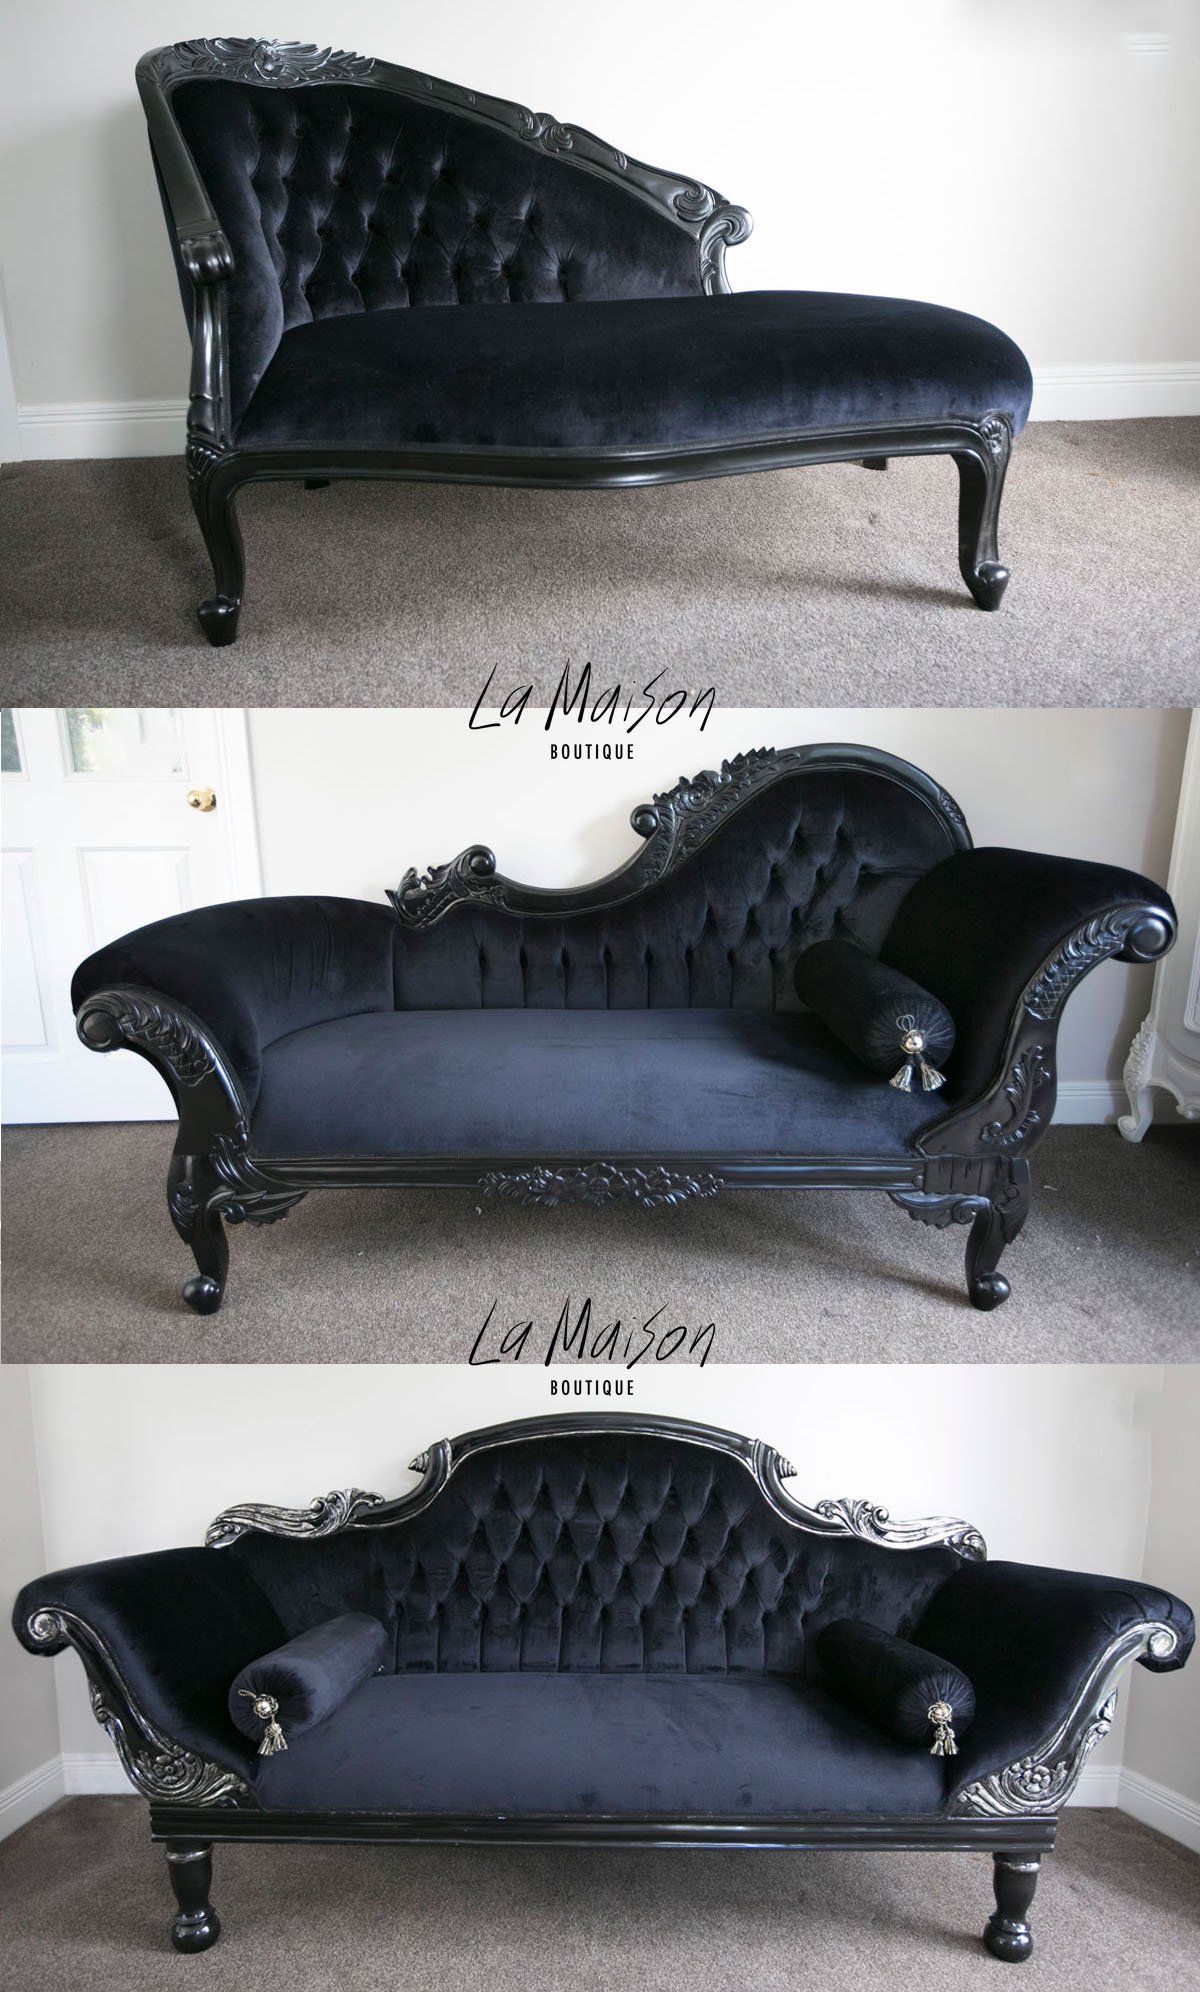 How to style a chaise longue la maison boutique for Lampadaire la chaise longue